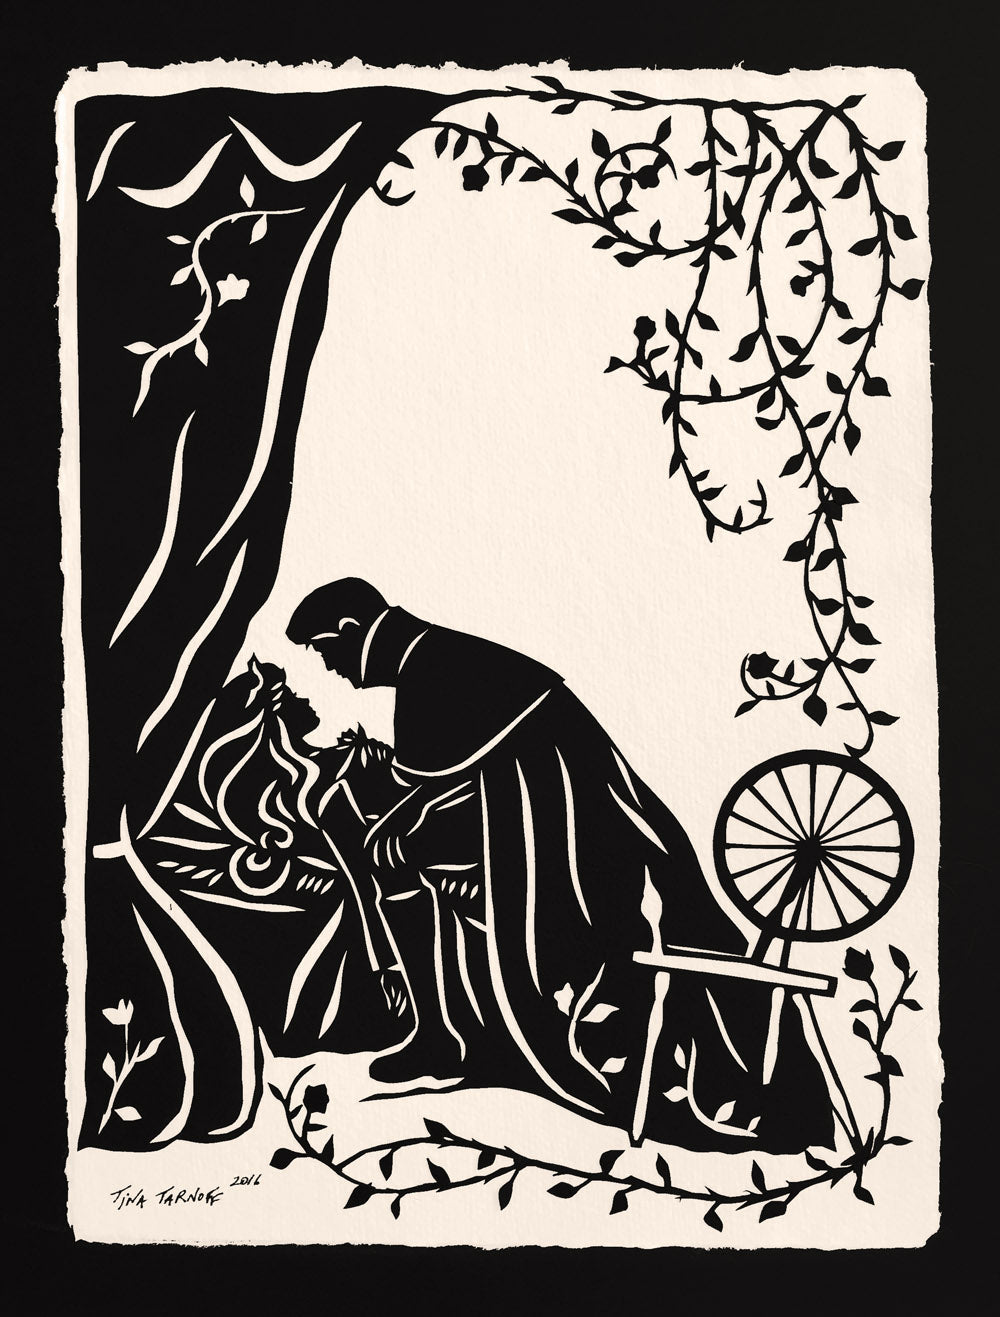 SLEEPING BEAUTY Papercut - Hand-Cut Silhouette